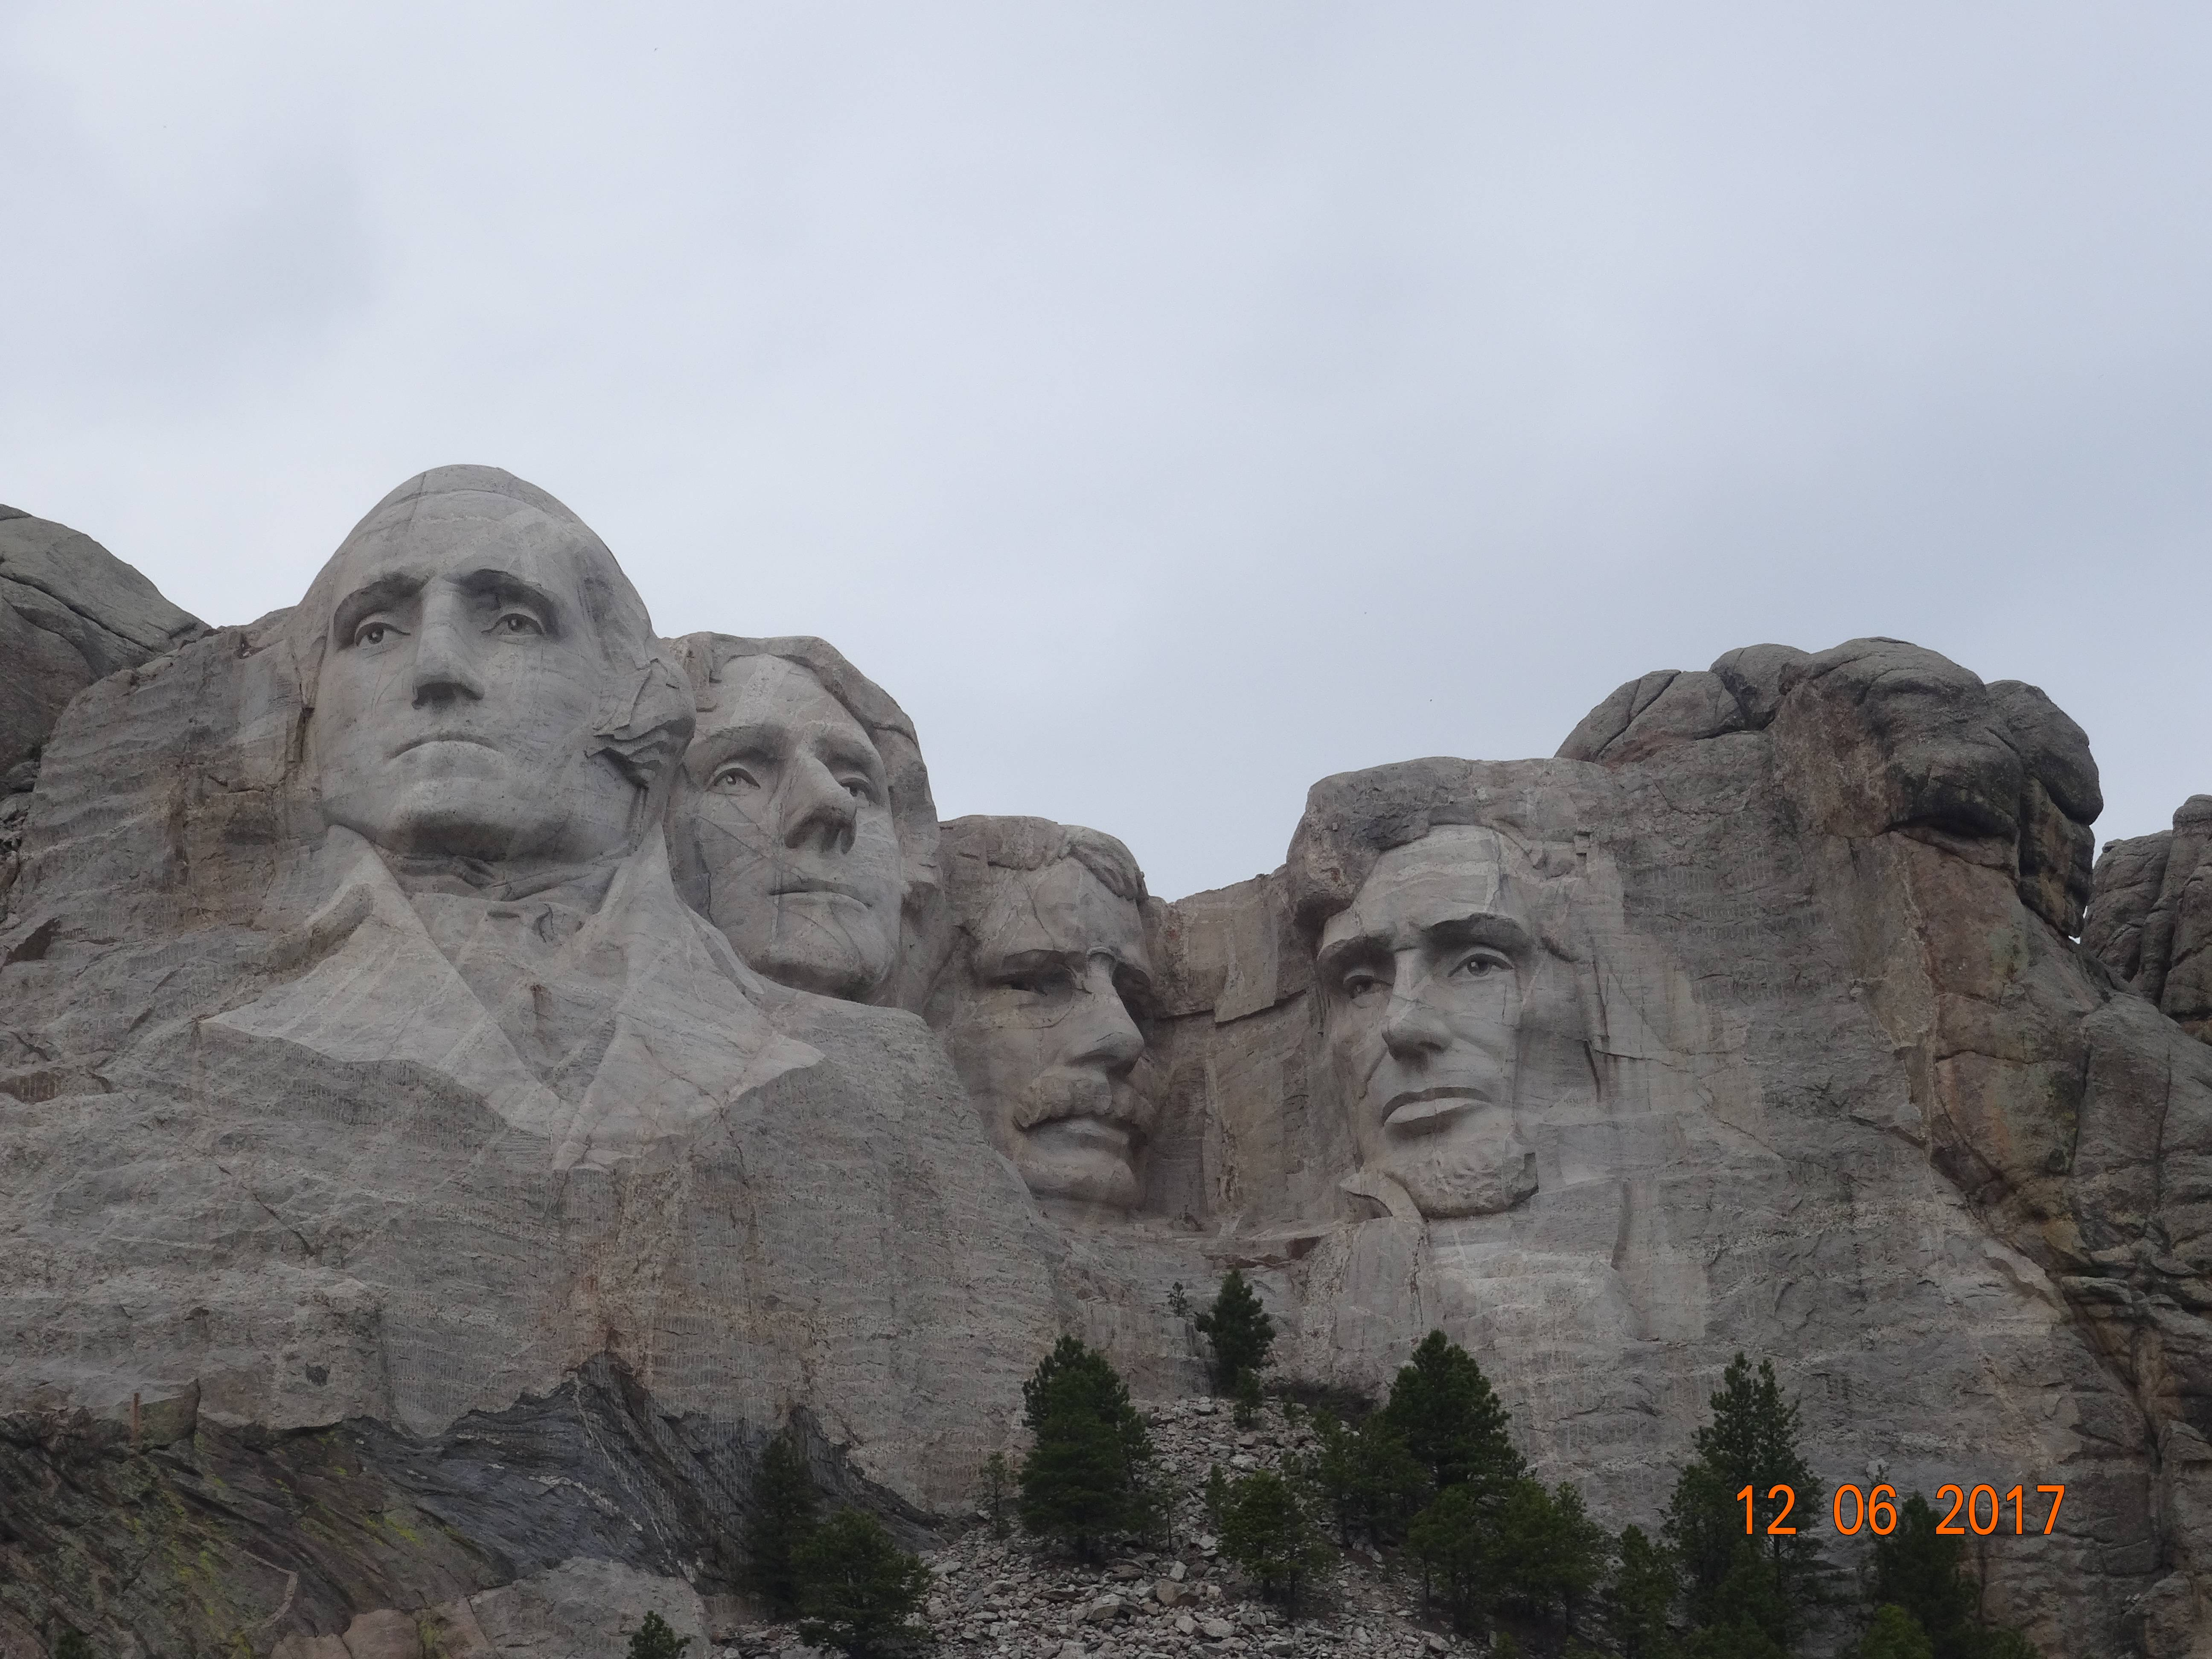 Photo 1: Mount Rushmore National Memorial